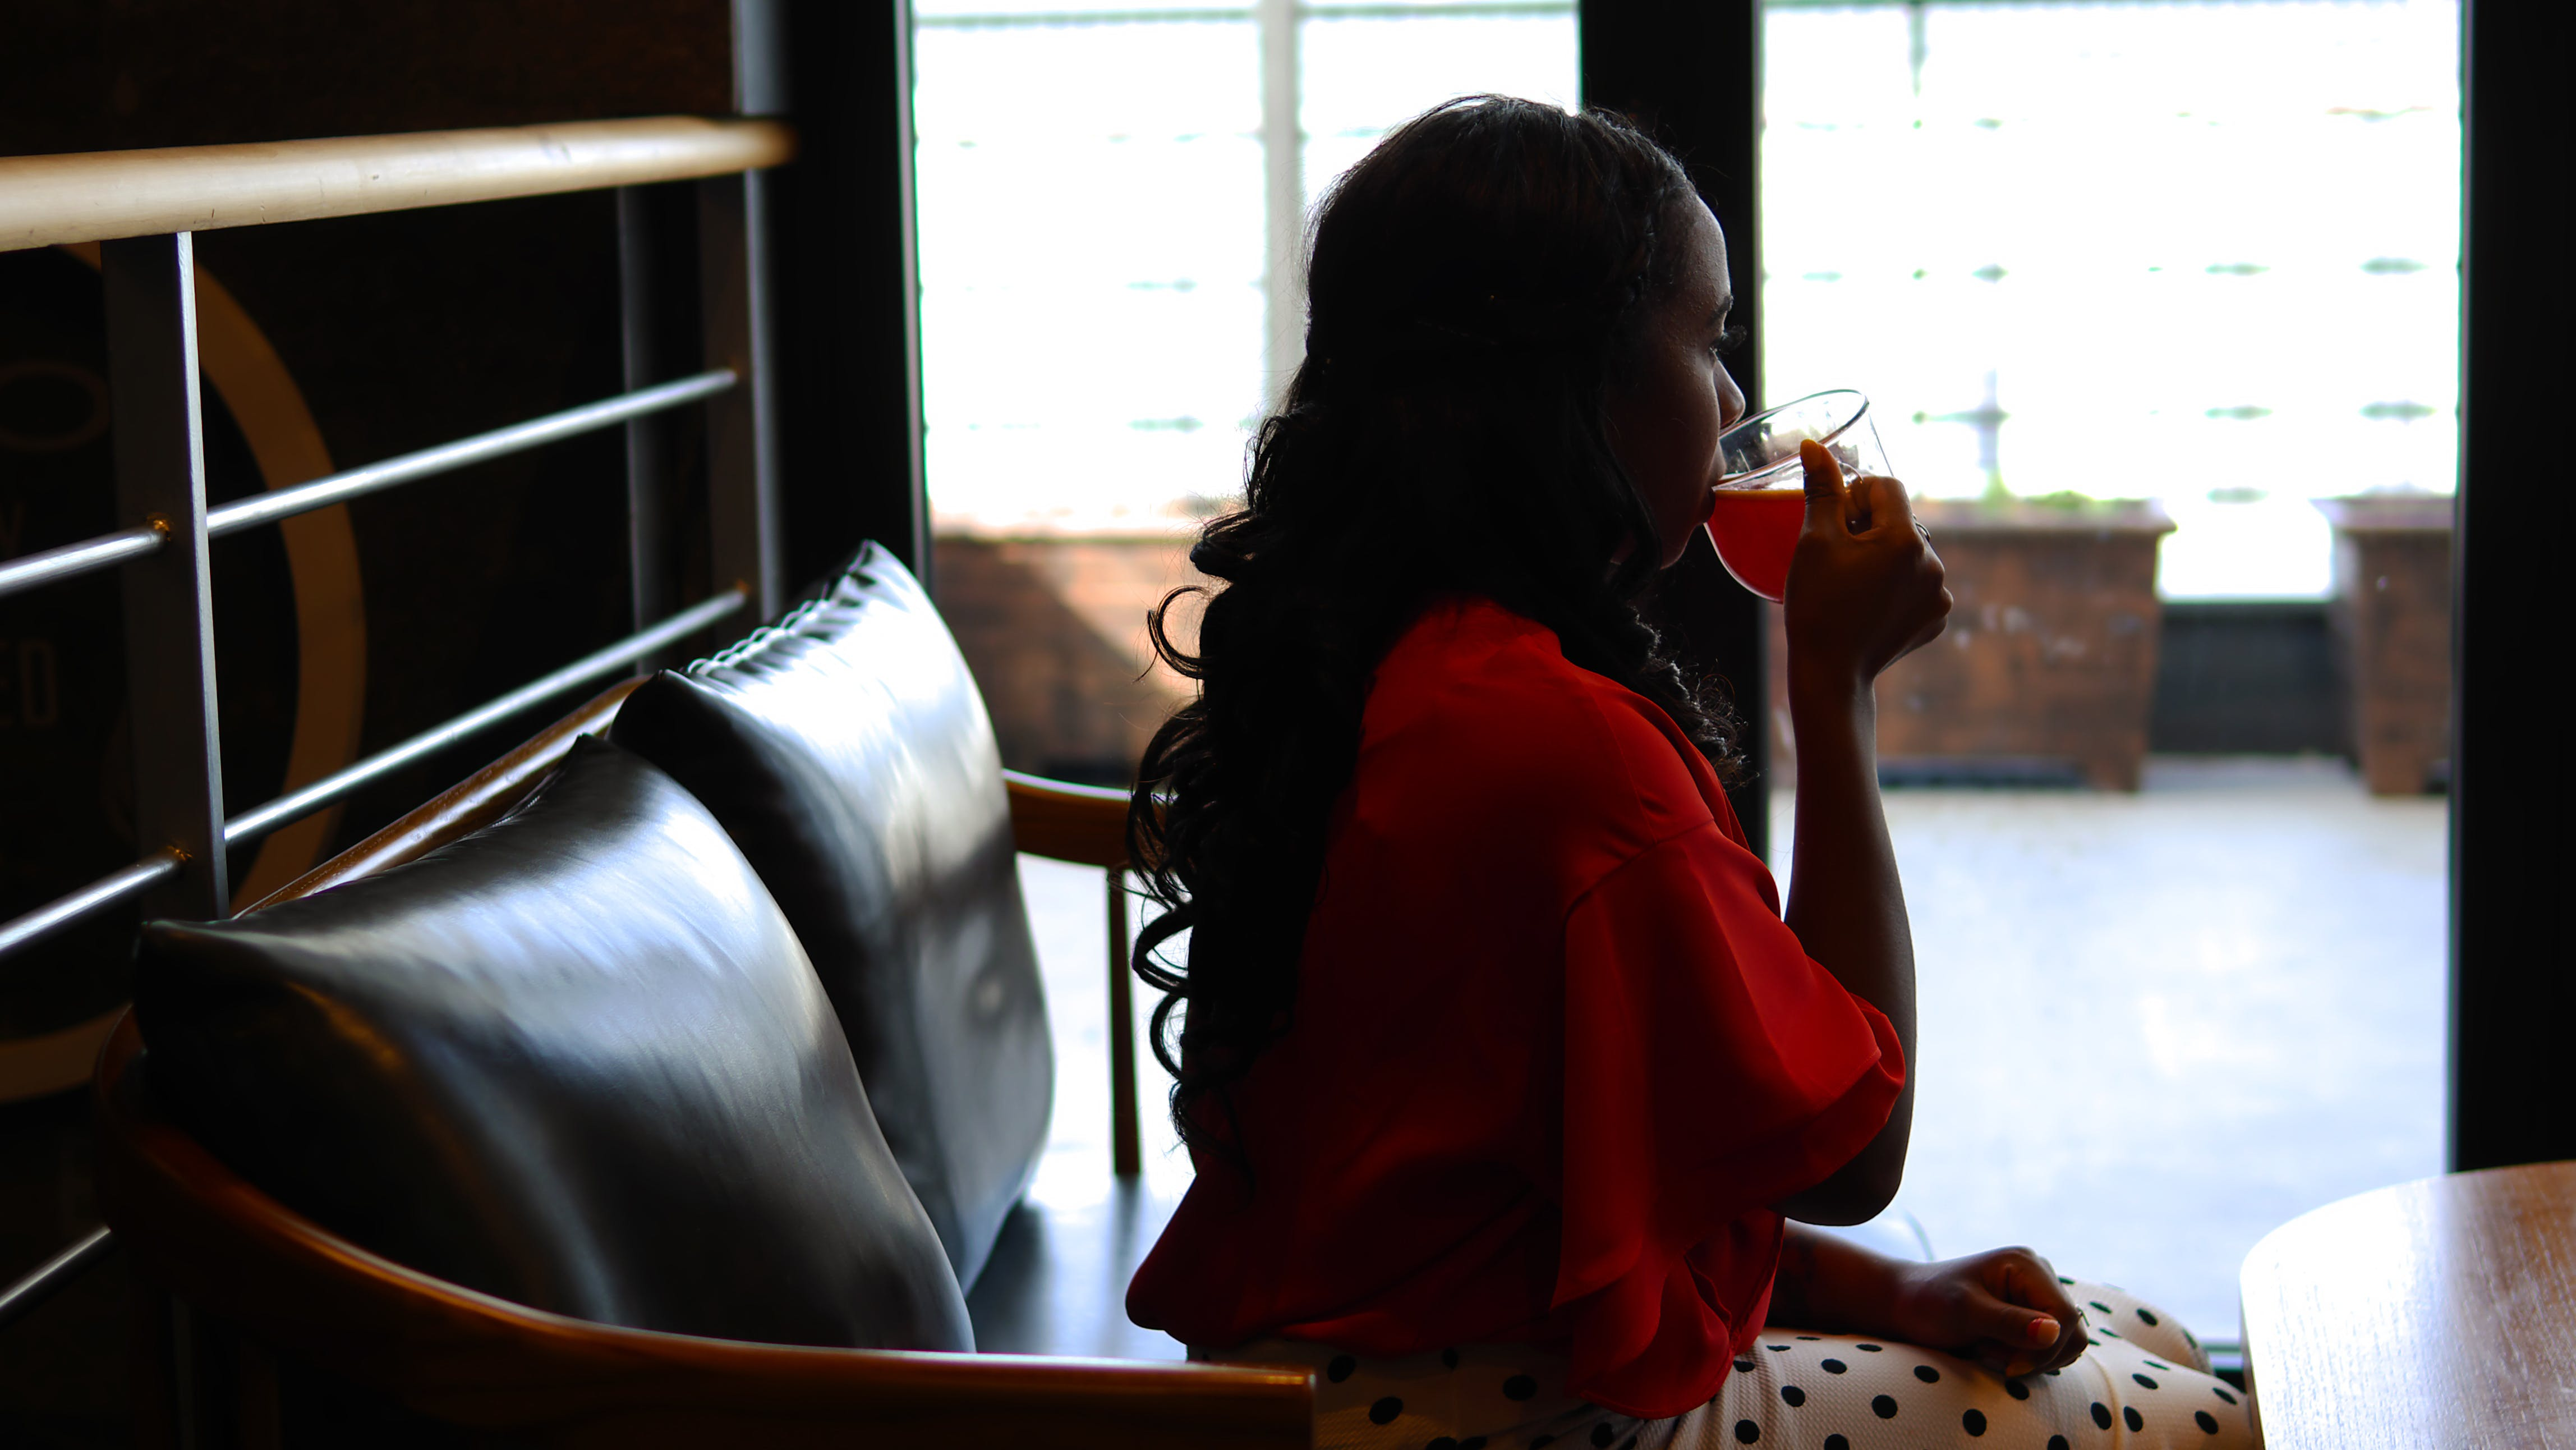 Woman Wearing Red Long-sleeved Blouse Sitting and Drinking Liquid